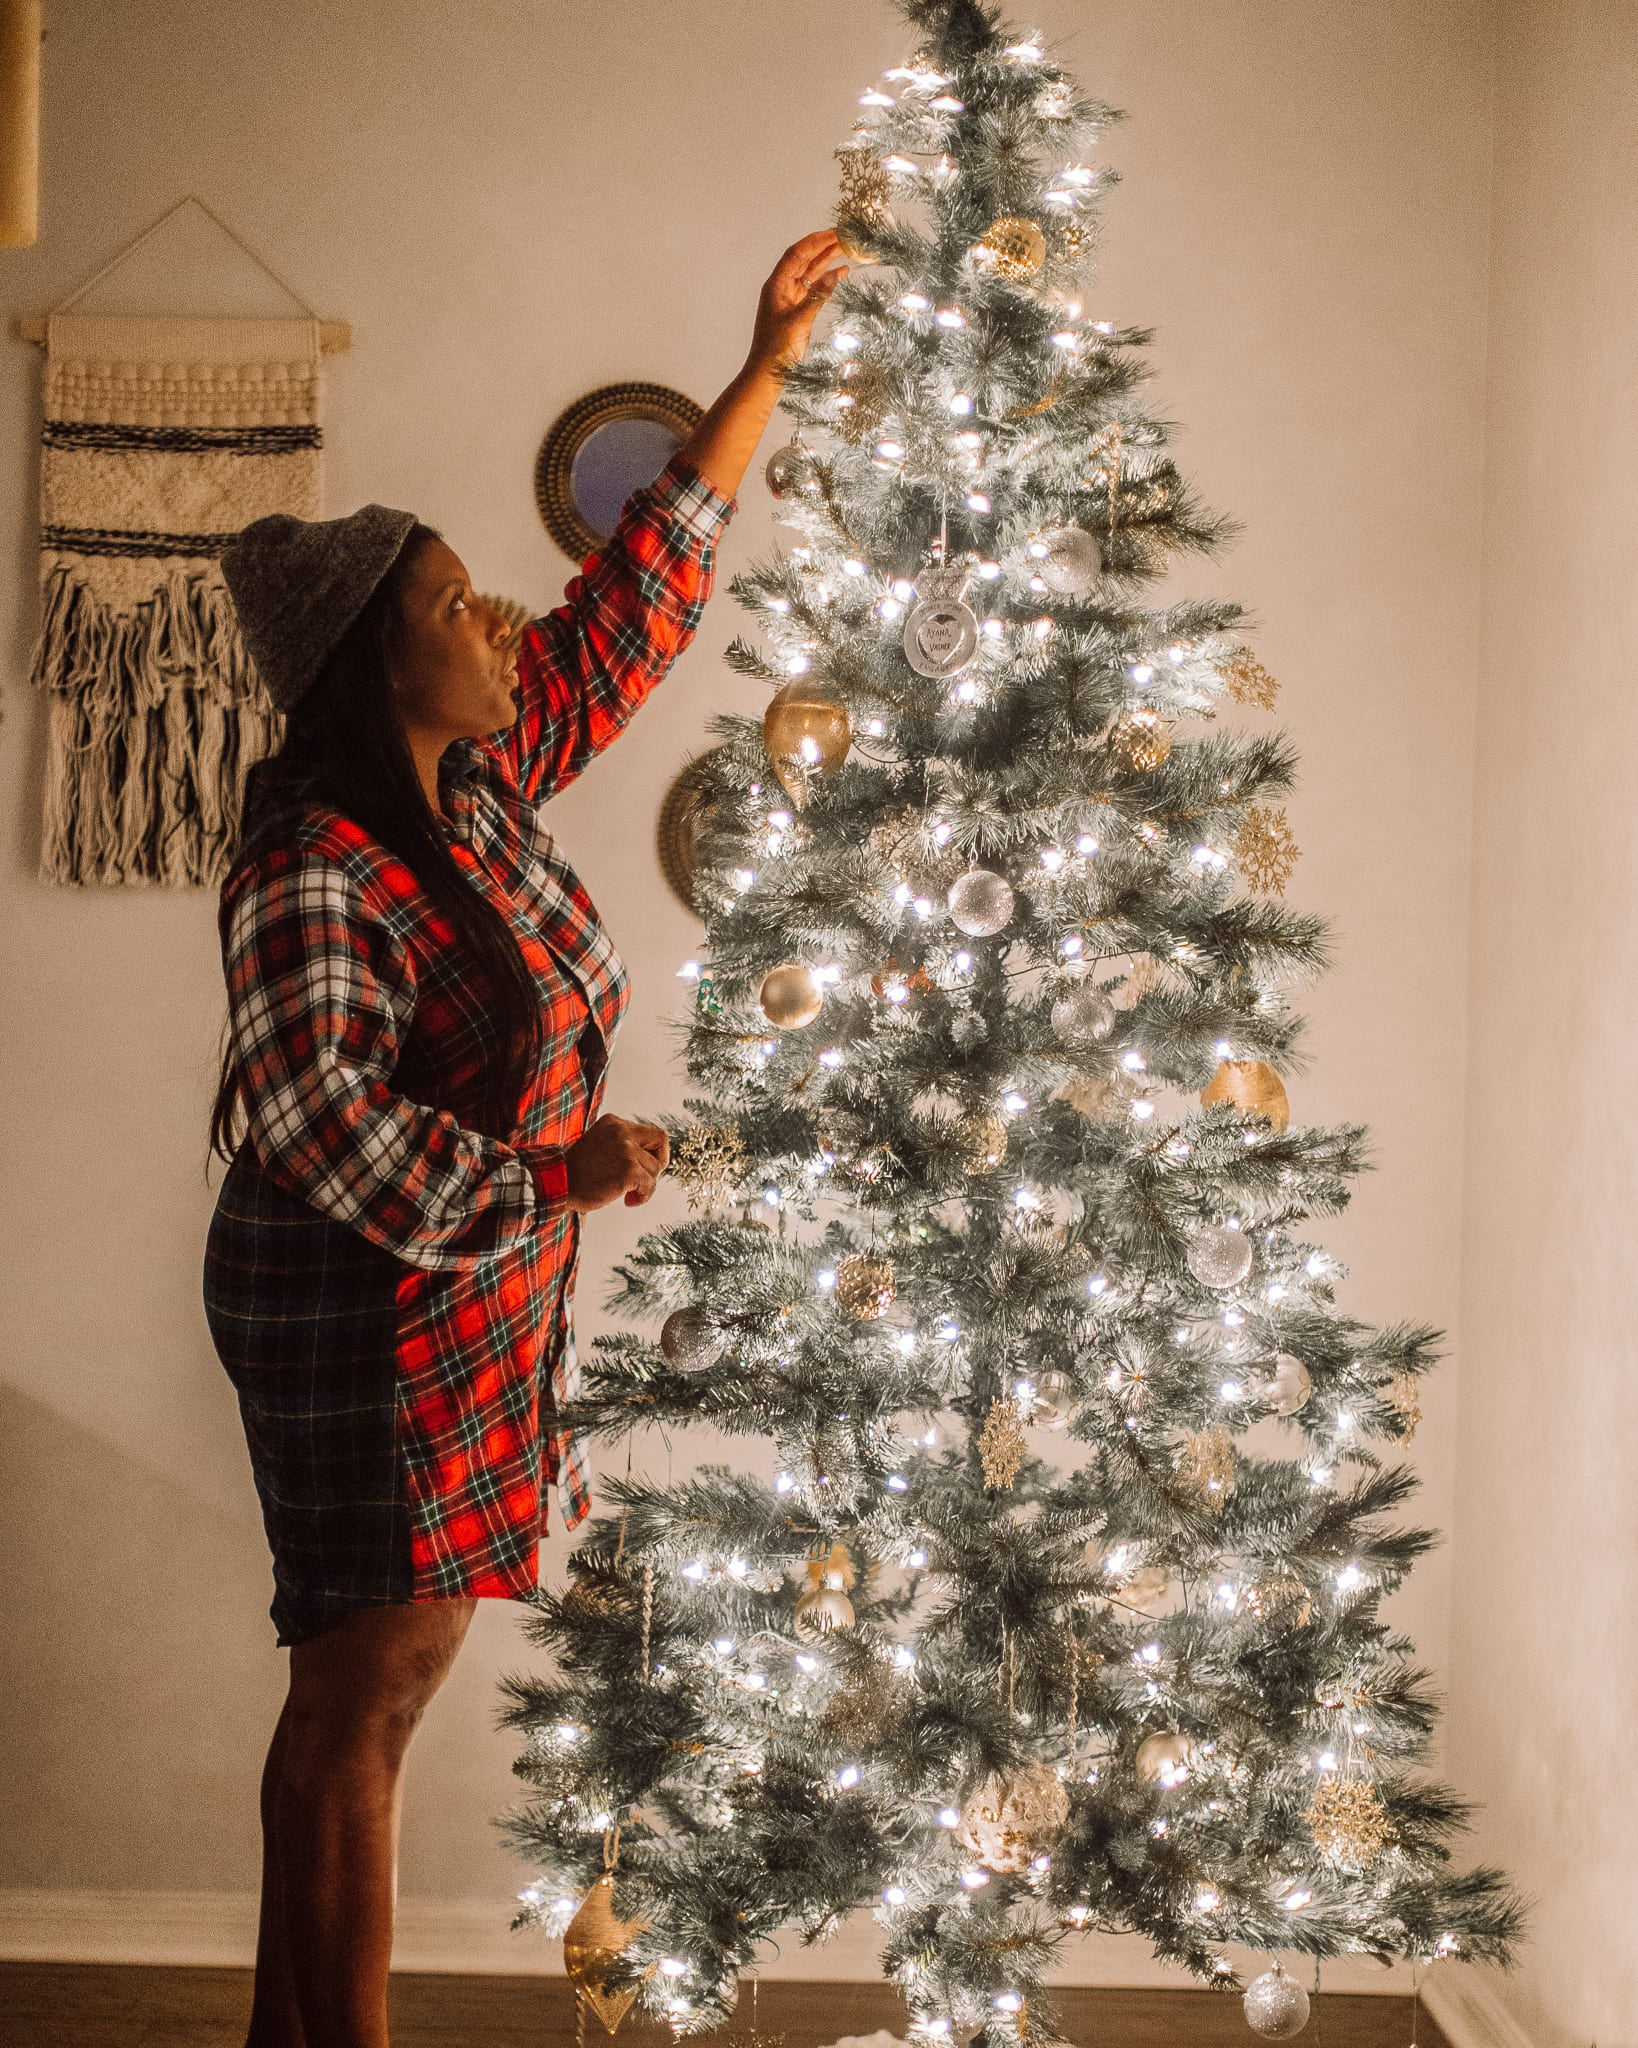 Tampa Blogger Ayana Lage stands next to a lit Christmas tree